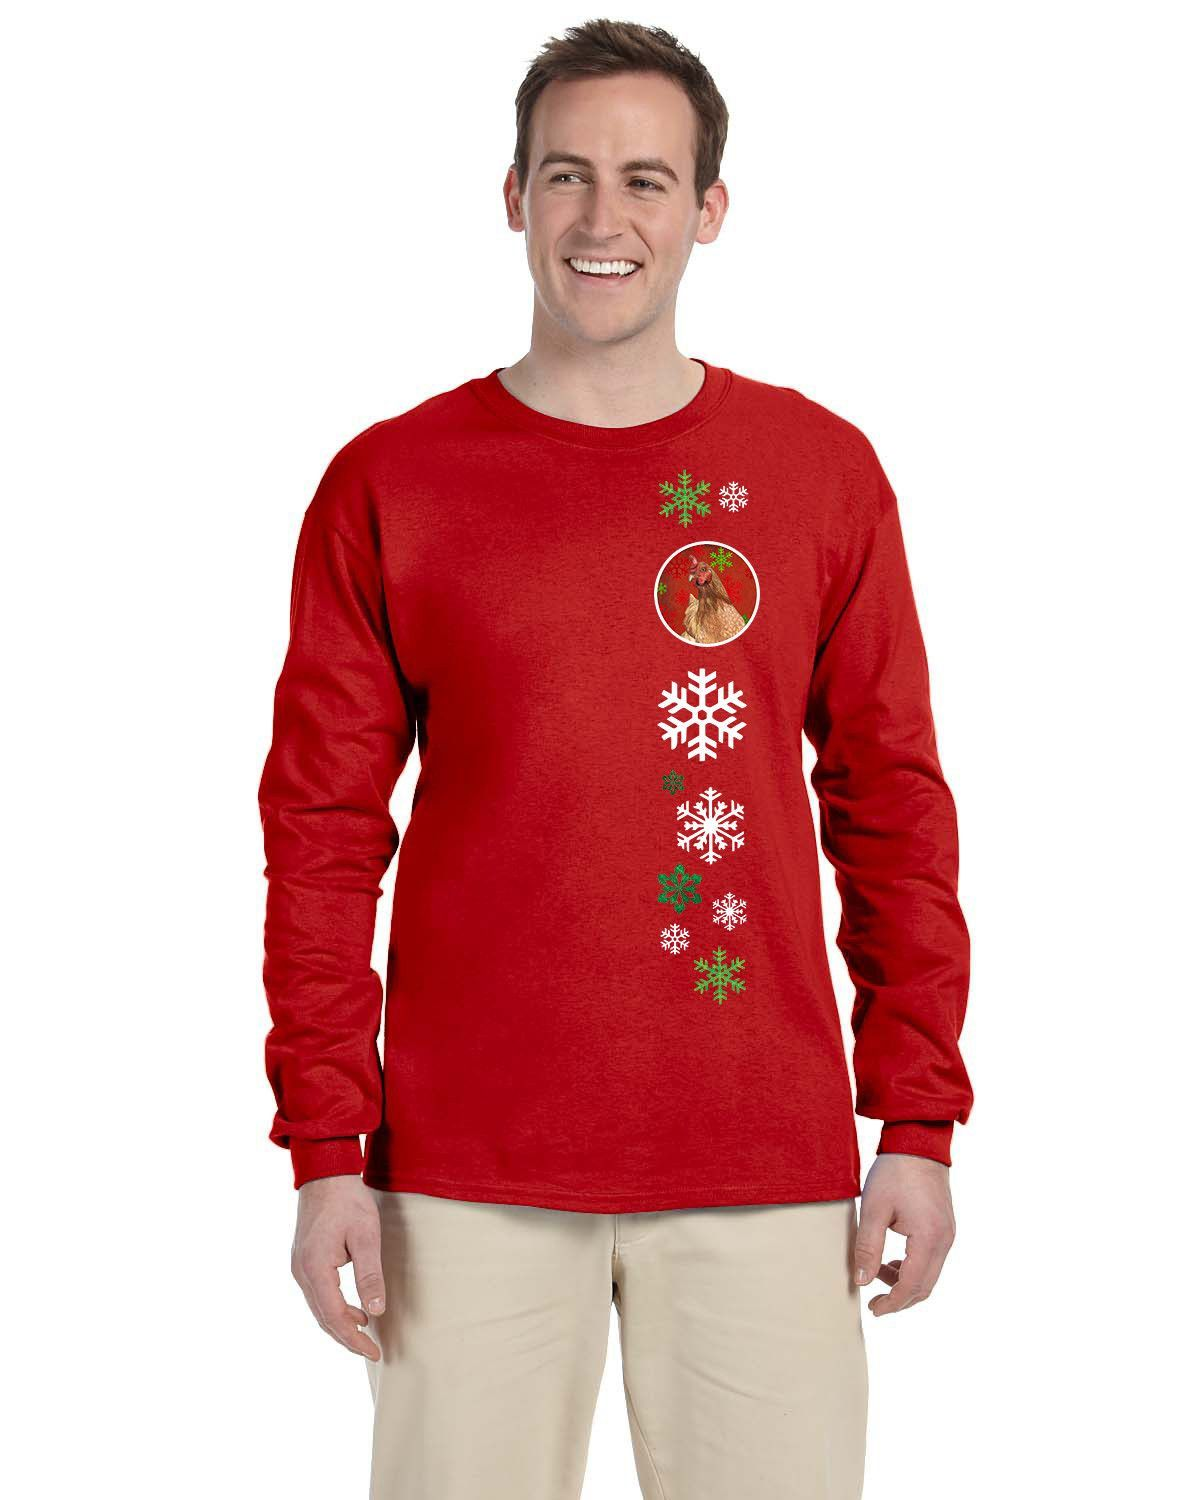 Chicken Red Snowflakes Long Sleeve Red Unisex Tshirt Adult Large SB3129-LS-RED-L